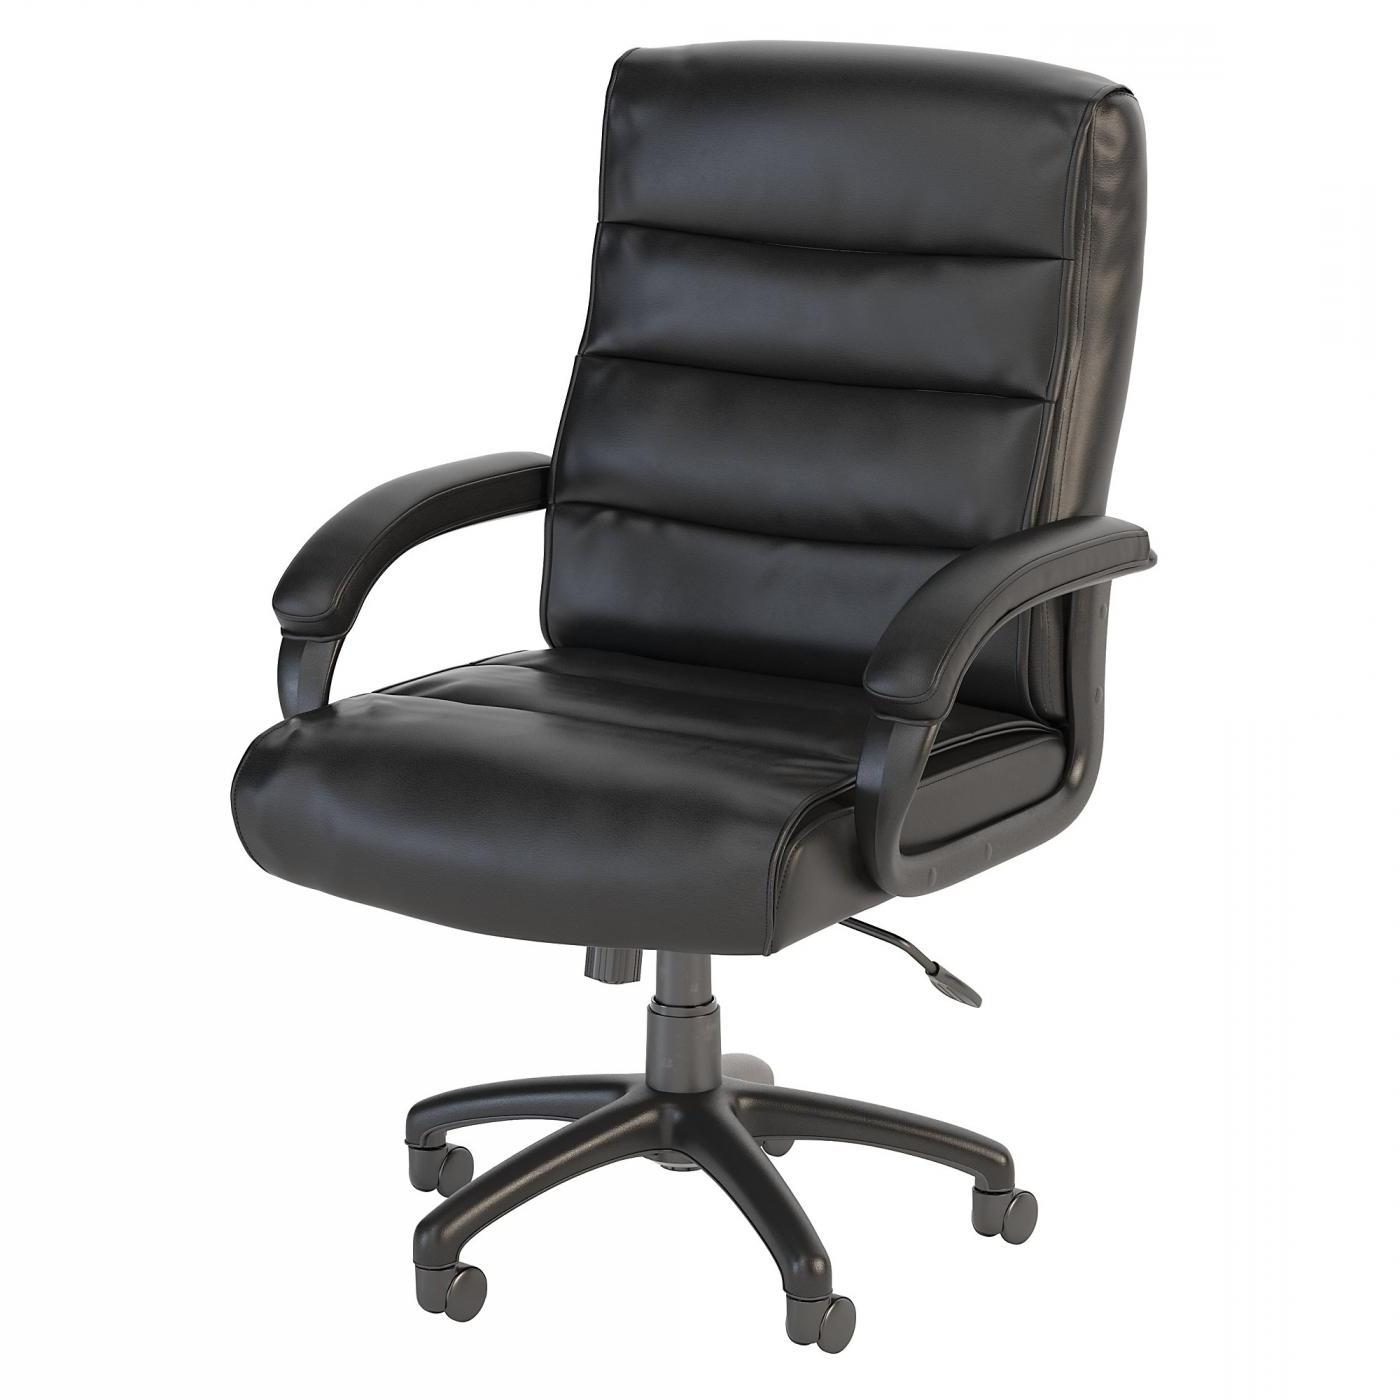 <font color=#c60><b>BUSH BUSINESS FURNITURE SOFT SENSE MID BACK LEATHER EXECUTIVE OFFICE CHAIR. FREE SHIPPING</font></b> </font></b>